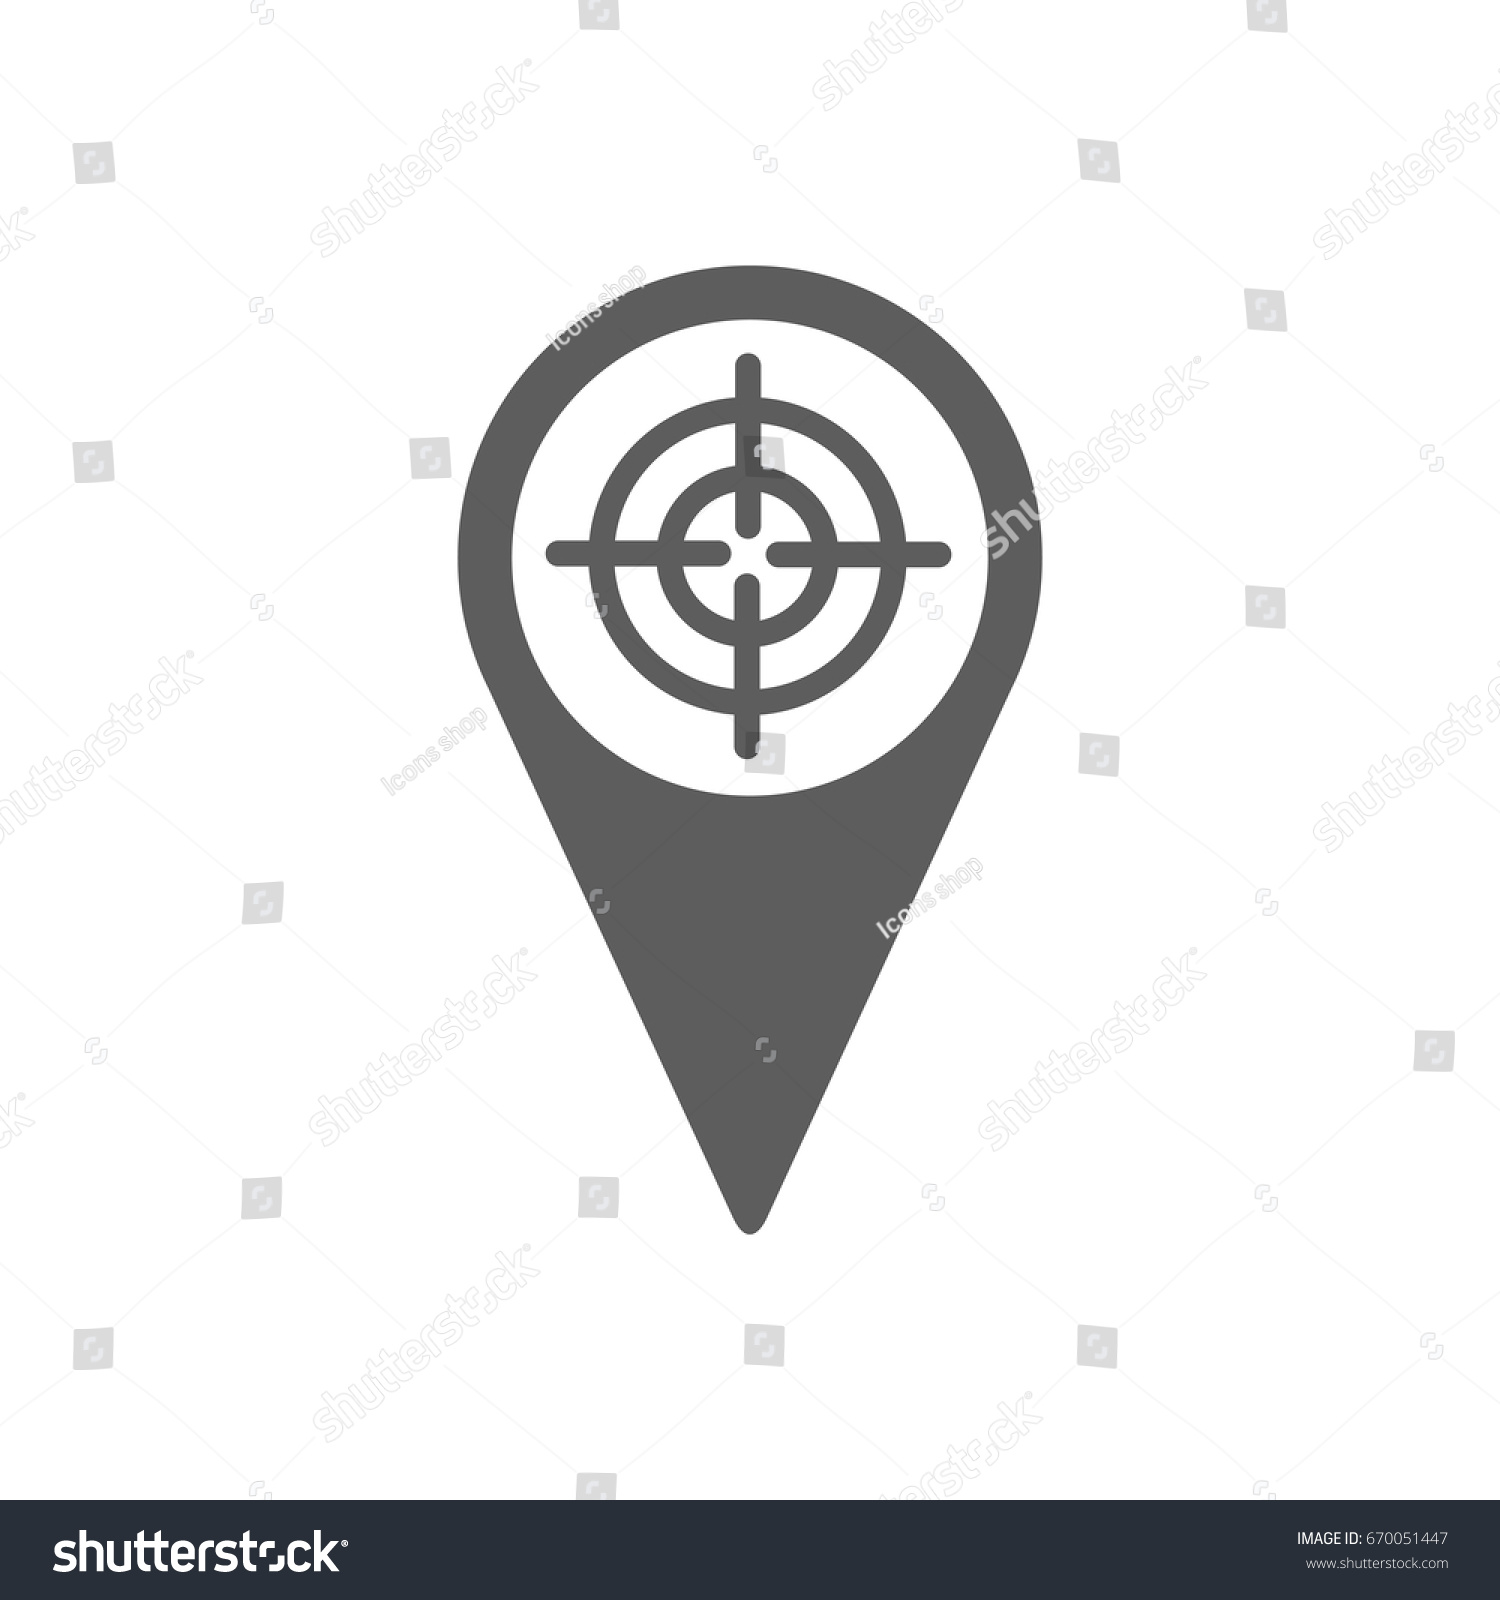 Pinpoint Shooting Range Icon Trendy Flat Stock Vector Hd Royalty